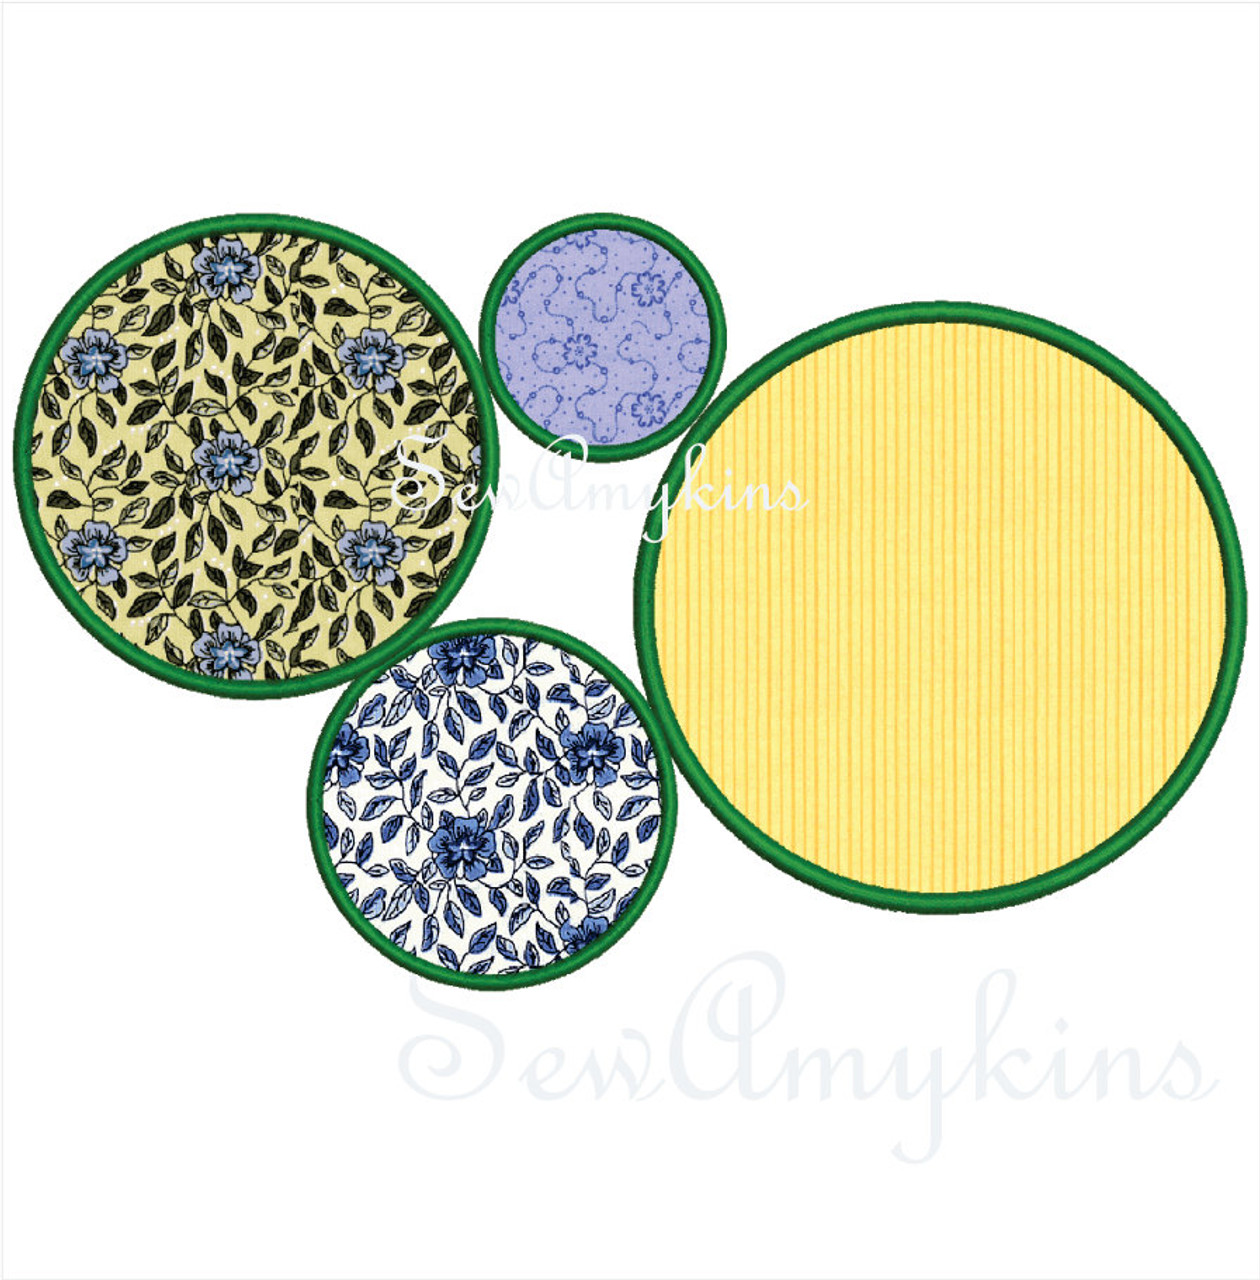 Circles applique embroidery designs digitized set of 5 circle circle applique machine embroidery design frame border dt1010fo